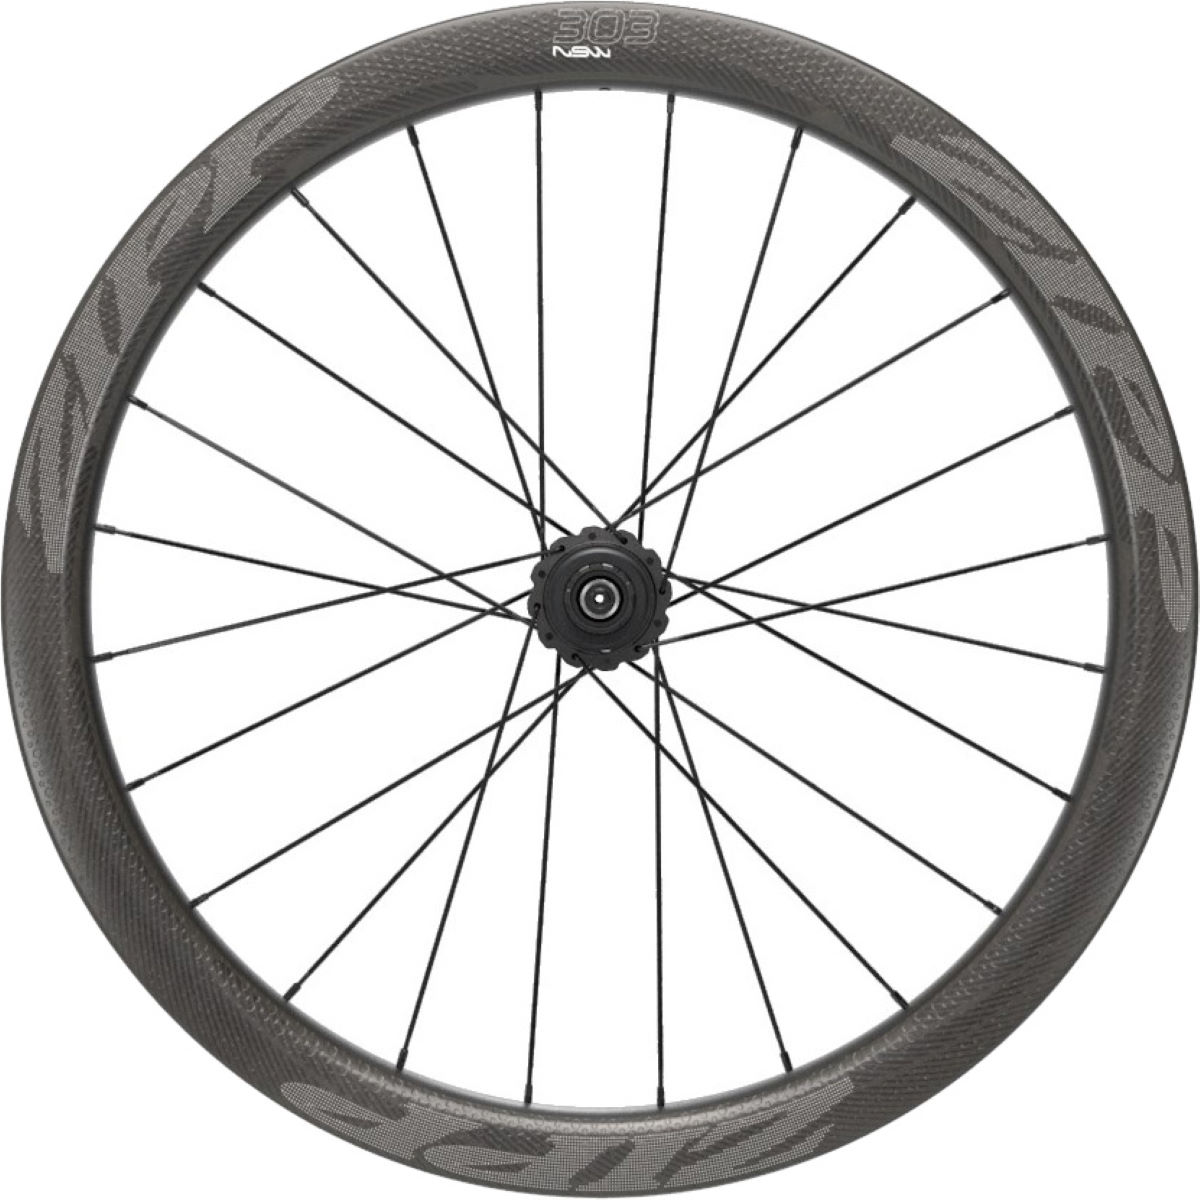 Zipp 303 NSW Carbon Road Disc Rear Wheel   Back Wheels